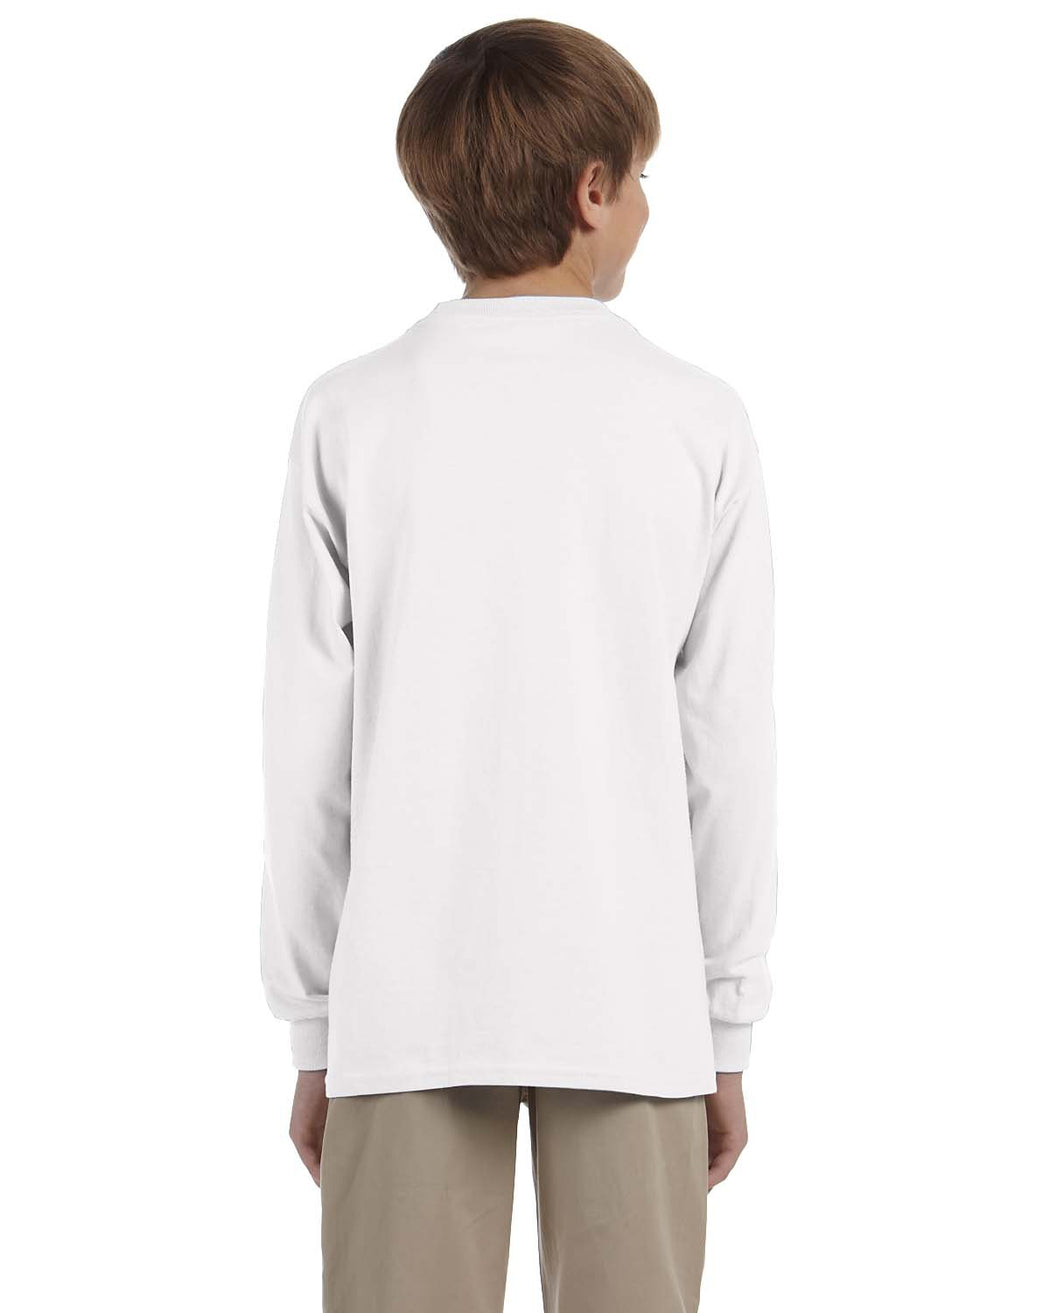 Youth Name Dropper Long Sleeve Tee